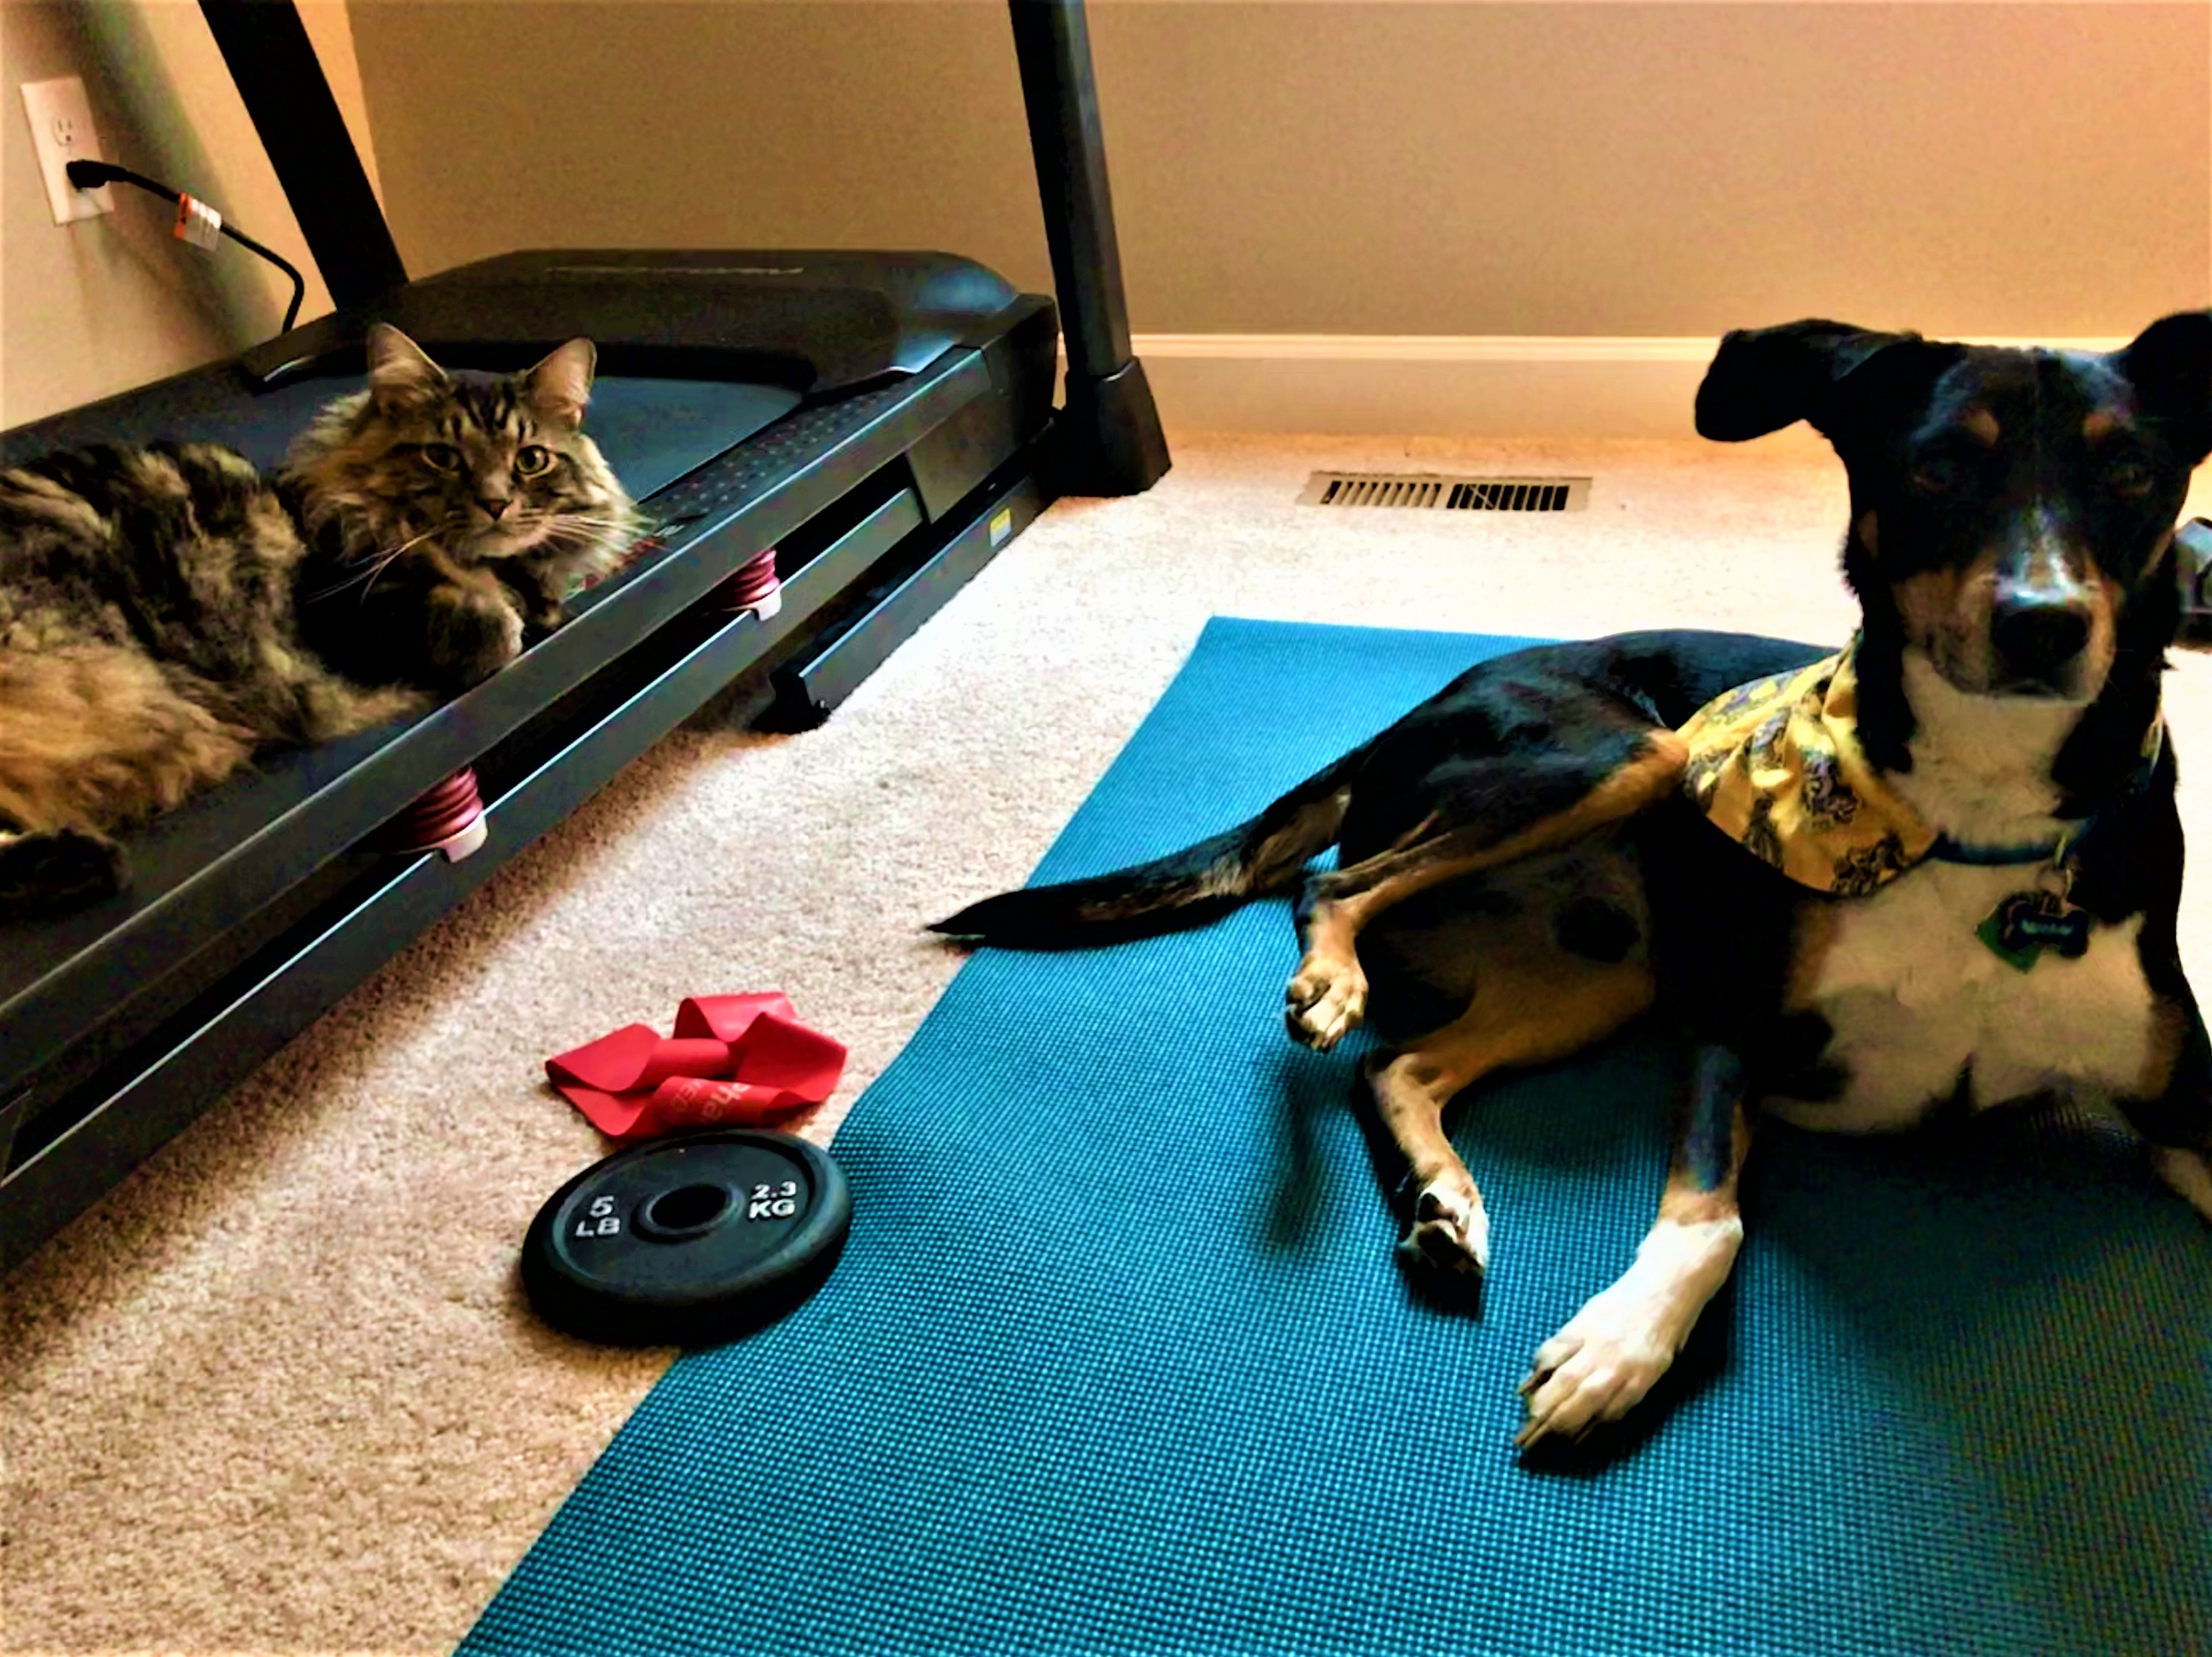 dog on yoga mat and cat on treadmill